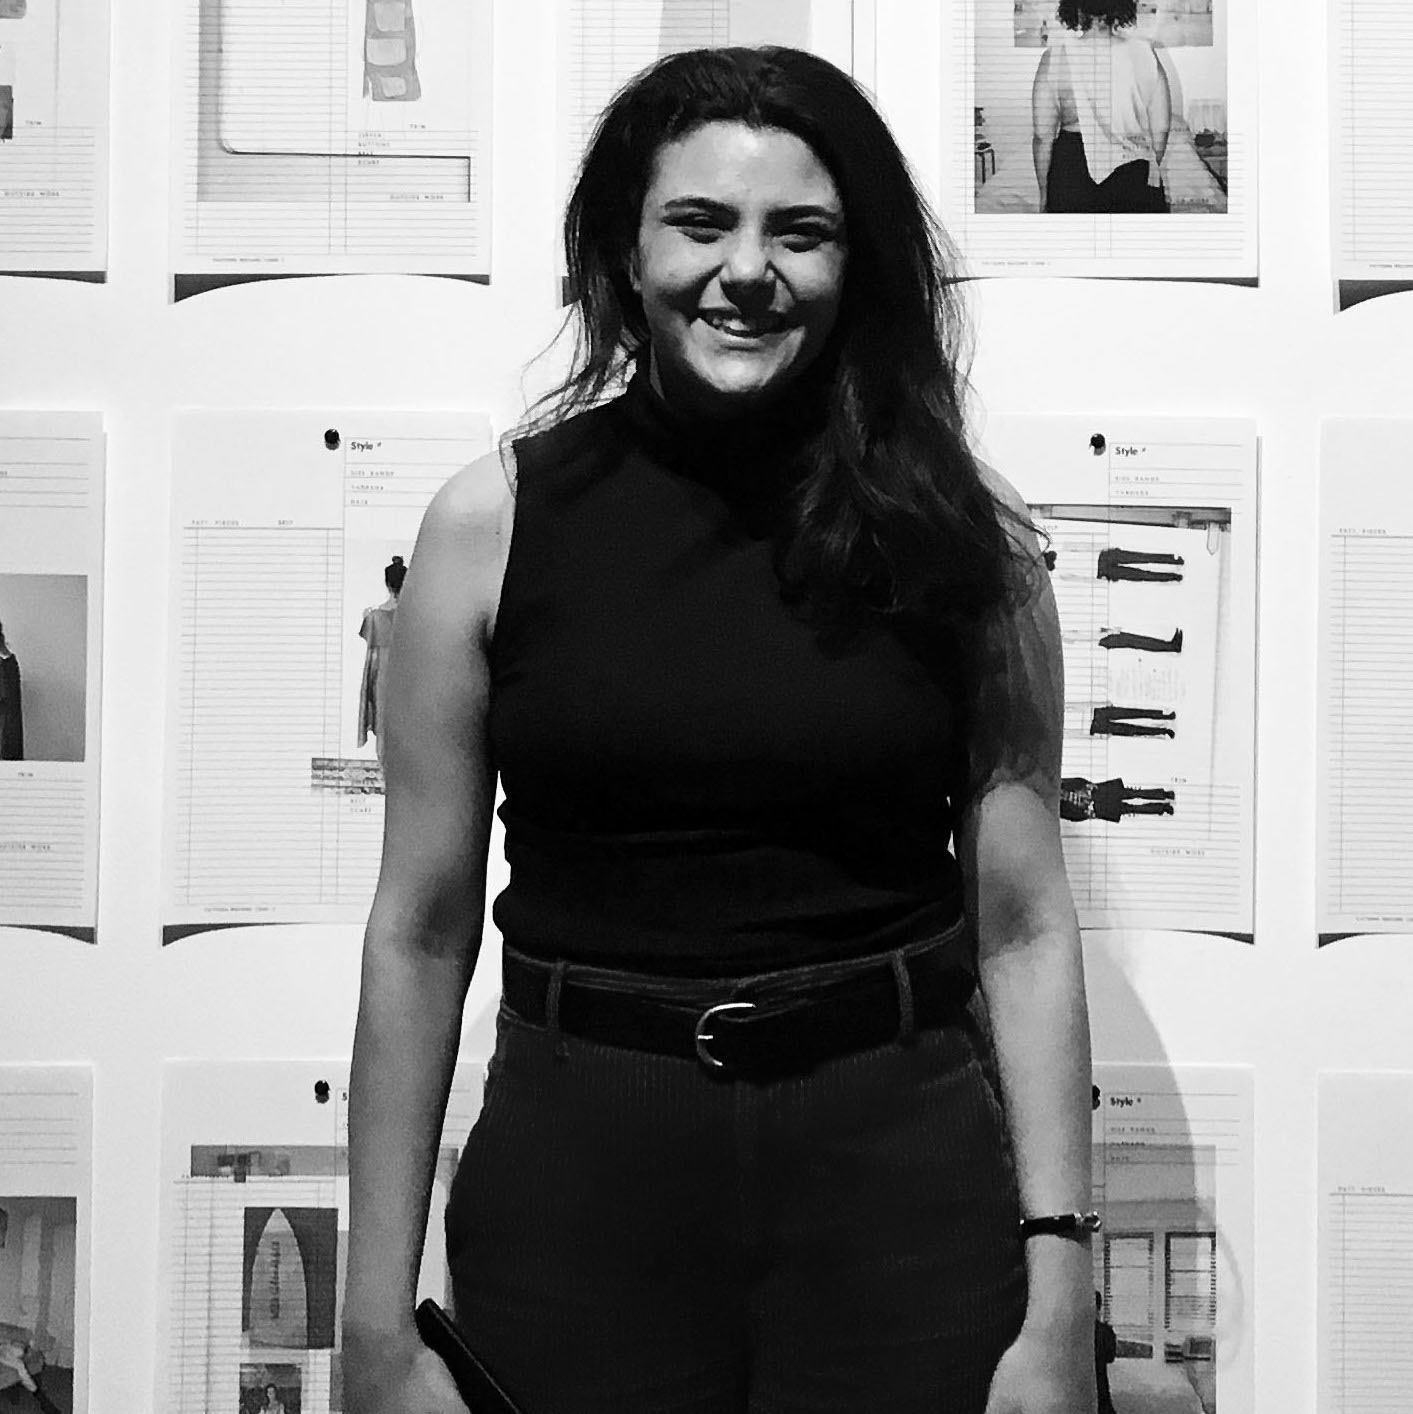 A grayscale photo of a woman standing in front of prints on a wall